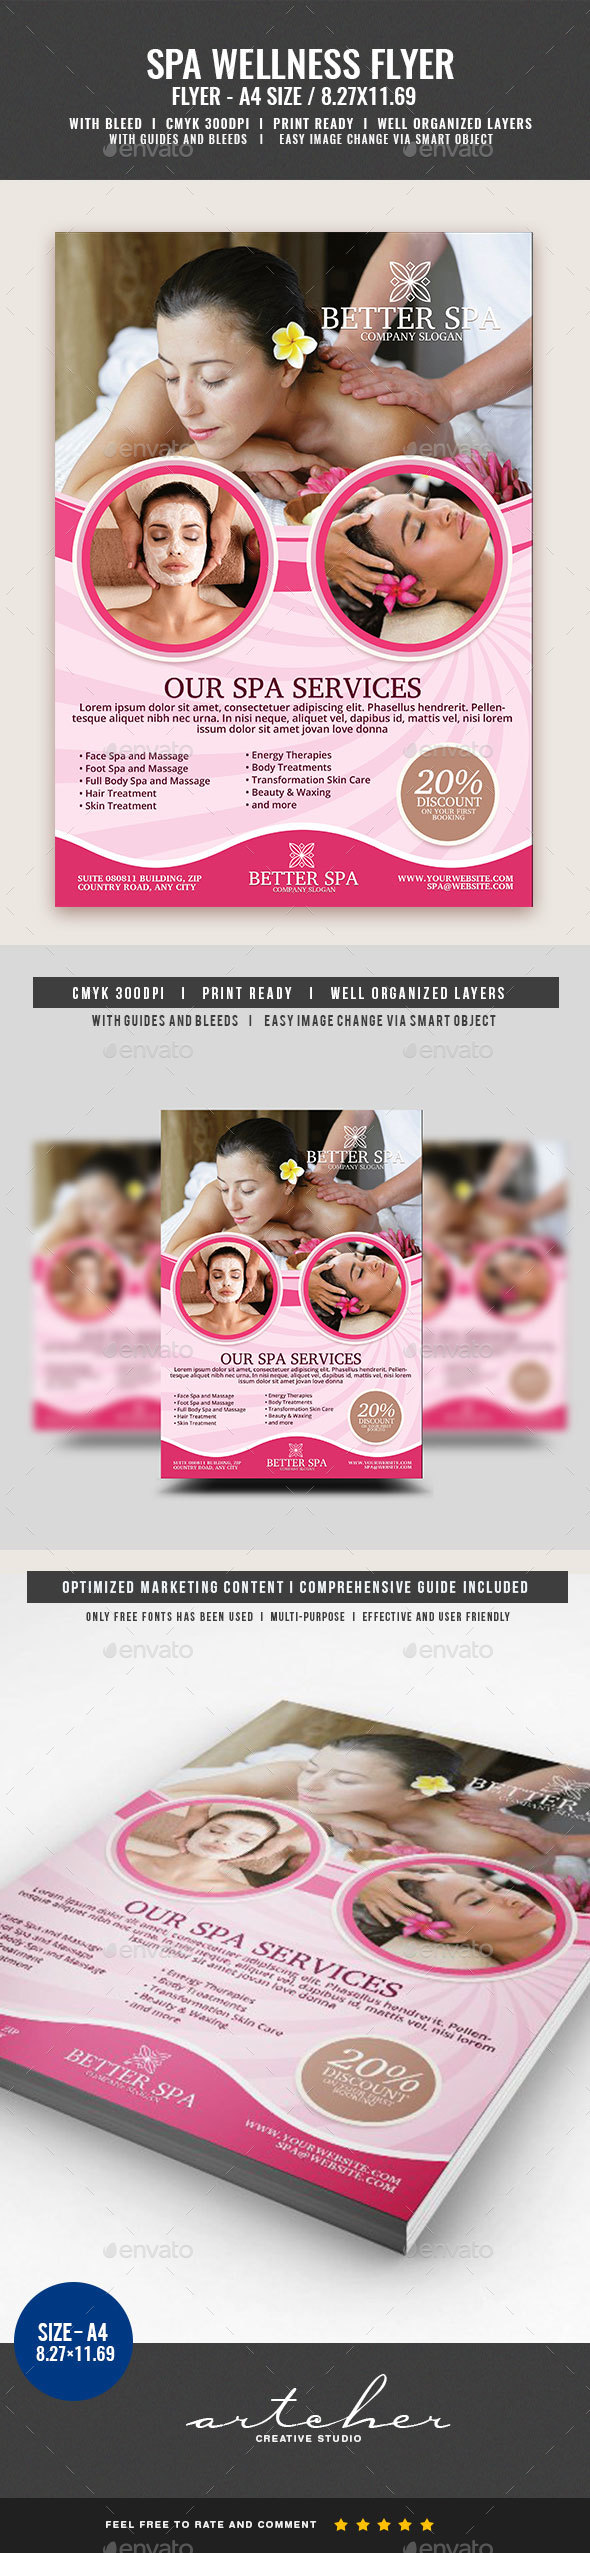 Spa and Massage Services Flyer - Corporate Flyers